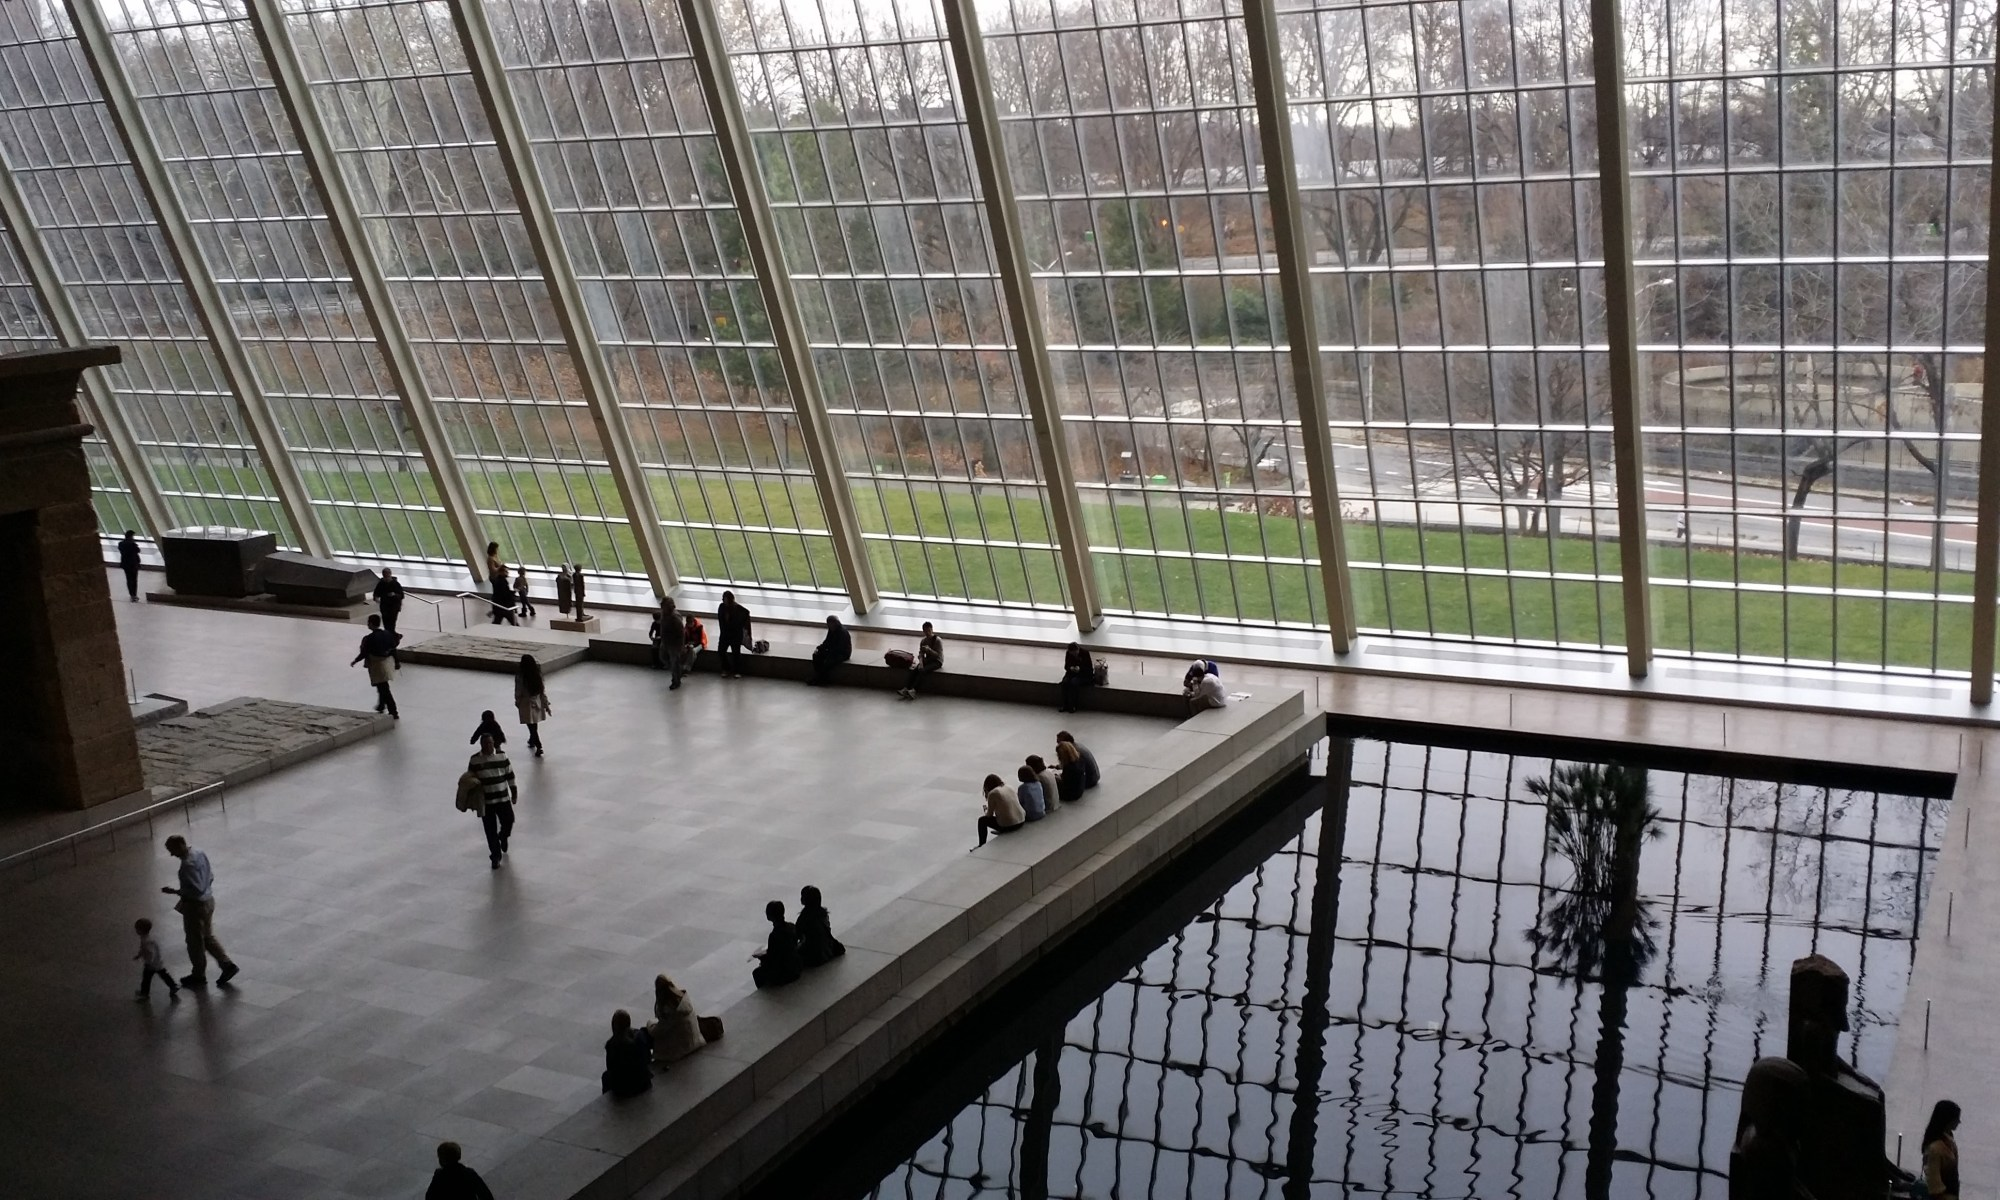 large room inside the Met with a reflecting pool and glass wall with greenery outside, photo taken by Janice Chan, SH/FT+SCAFFOLD (shiftandscaffold.com)